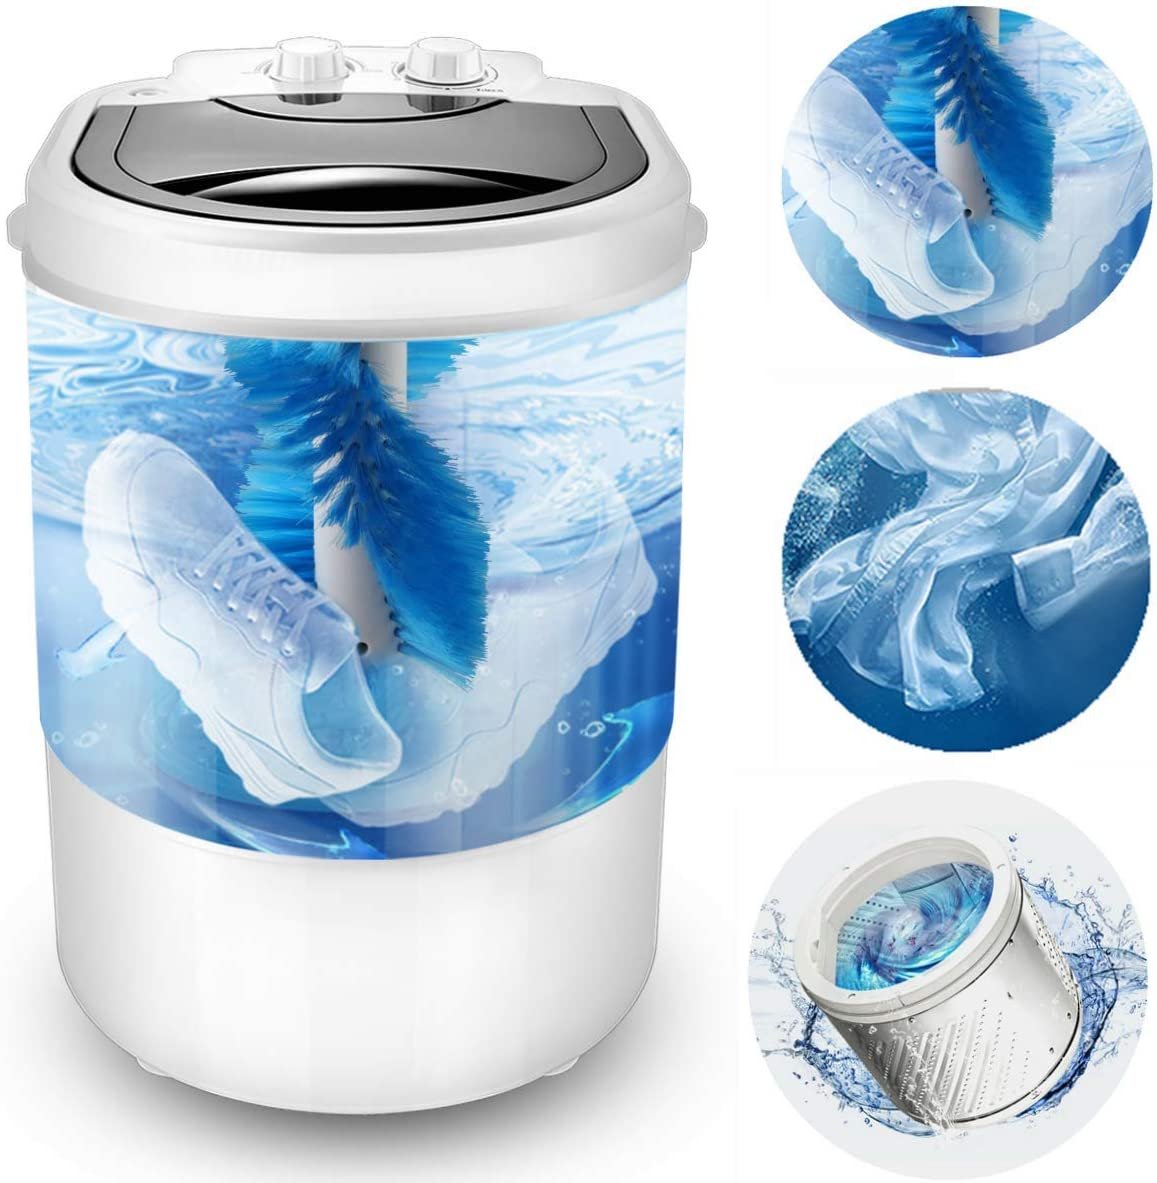 Multi-Function Portable Mini Shoes Washing Machine,Semi-Automatic,Three functions of washing shoes washing Clothes Spin-Dry,9.9 lbs Capacity